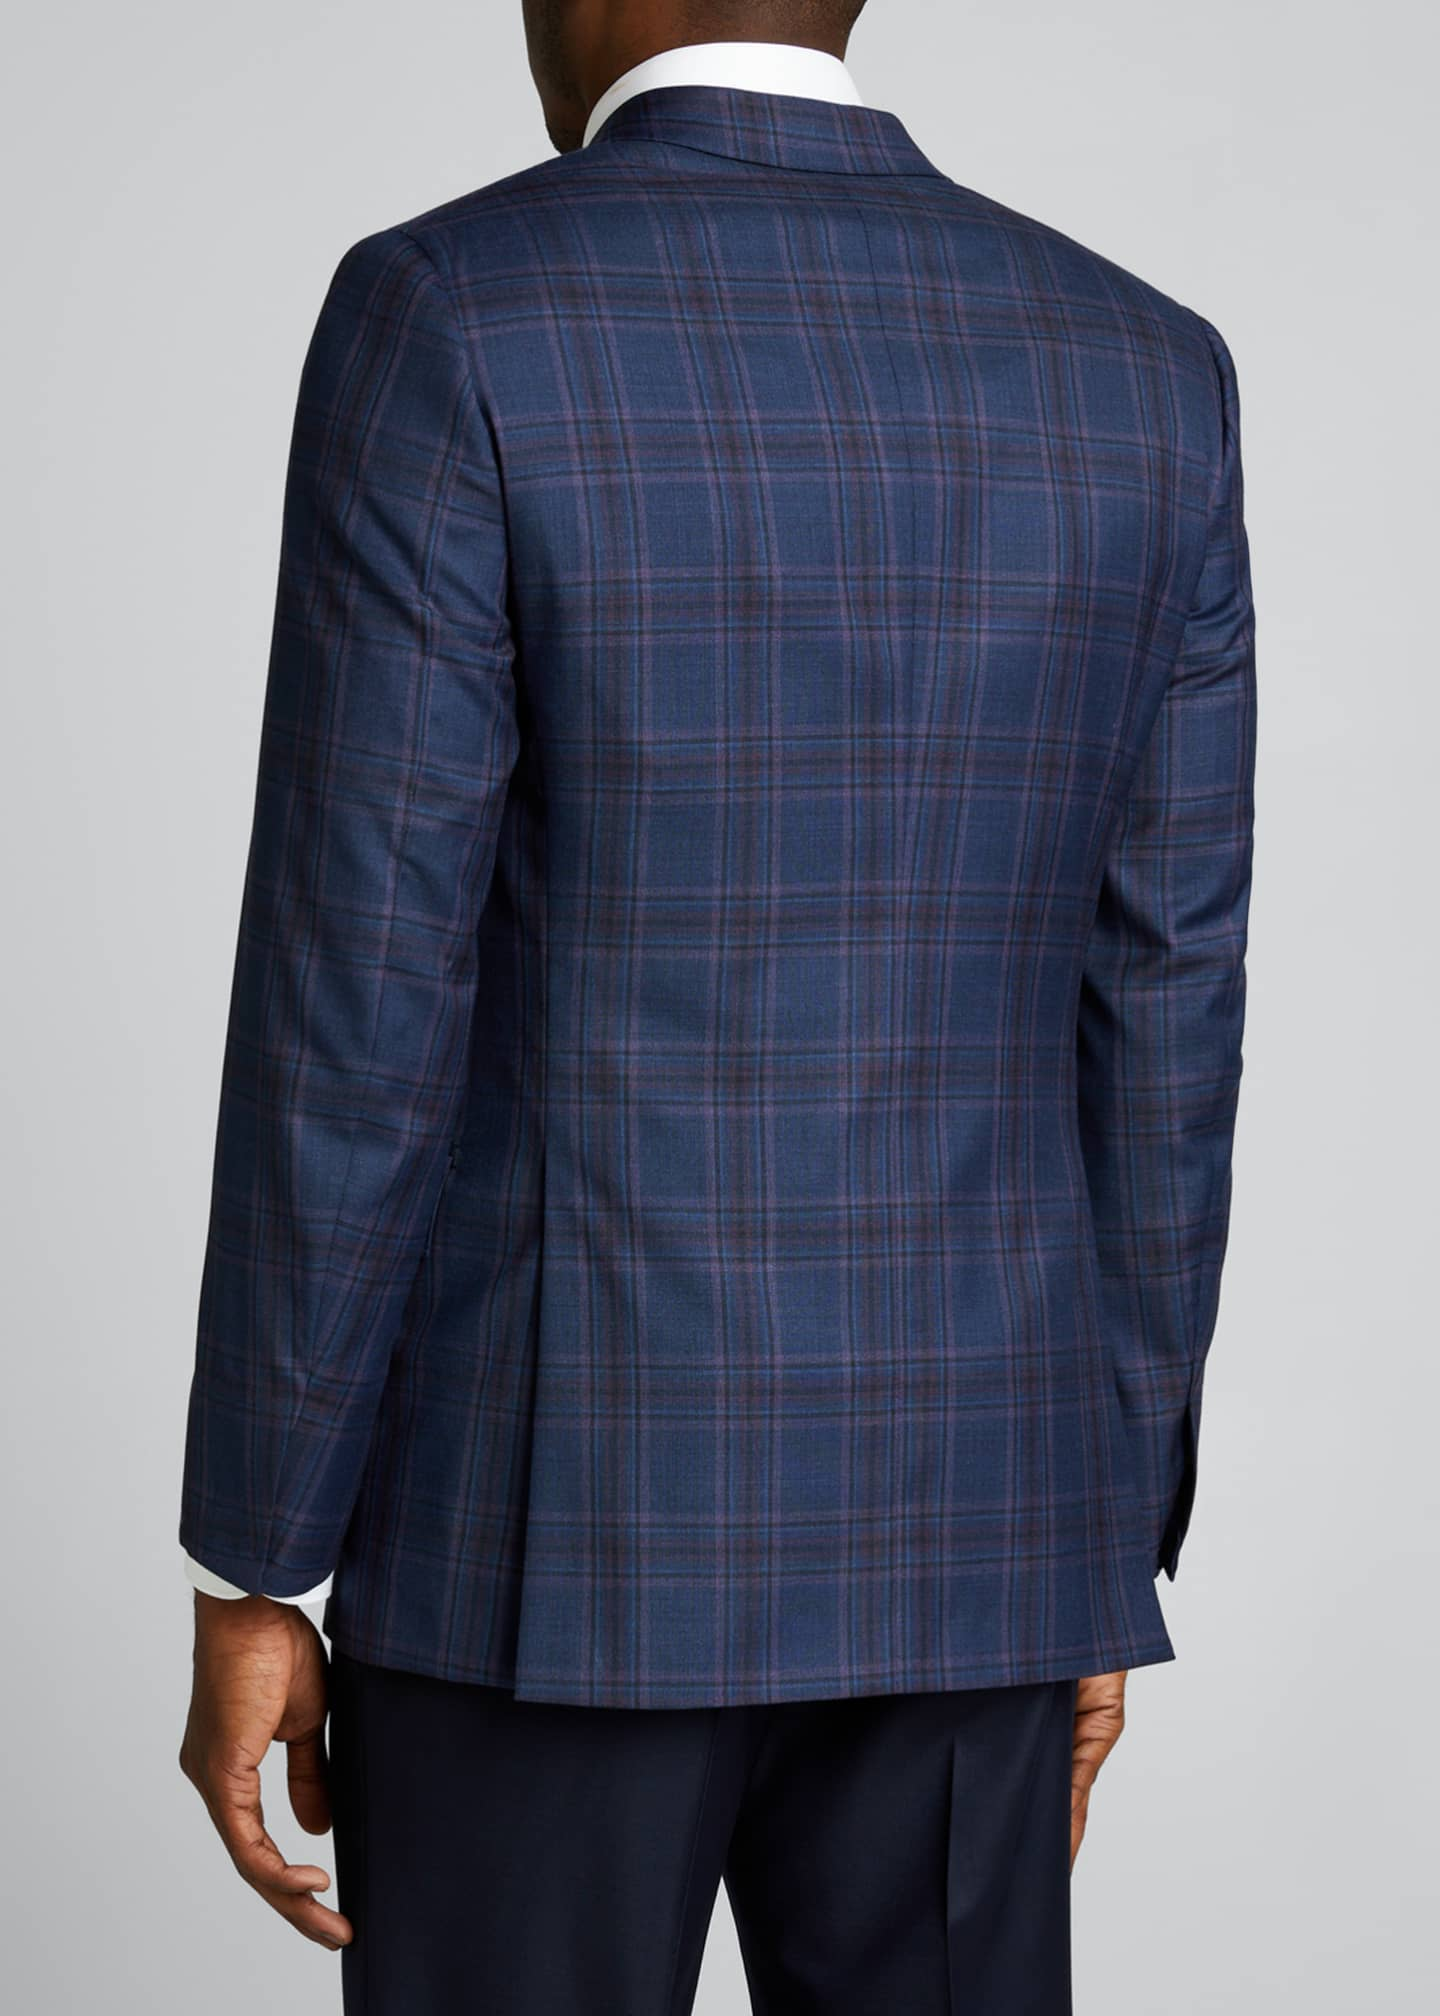 Image 2 of 5: Men's Plaid Wool Sport Jacket